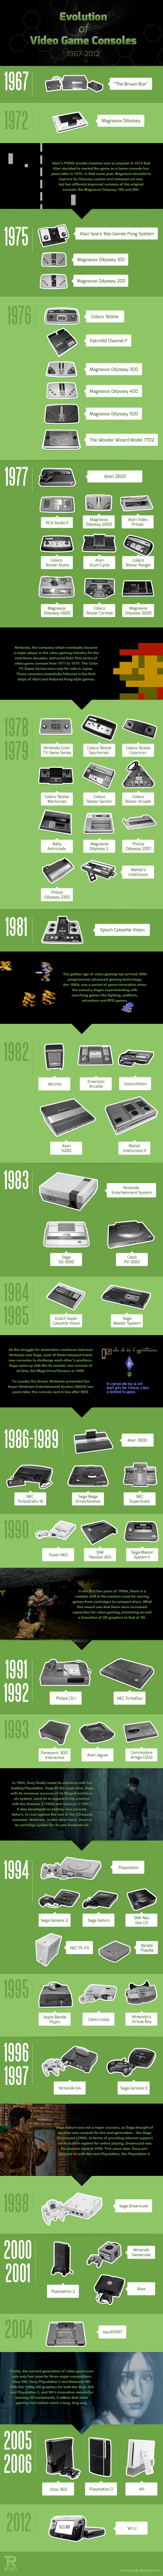 evolution-video-game-consoles1